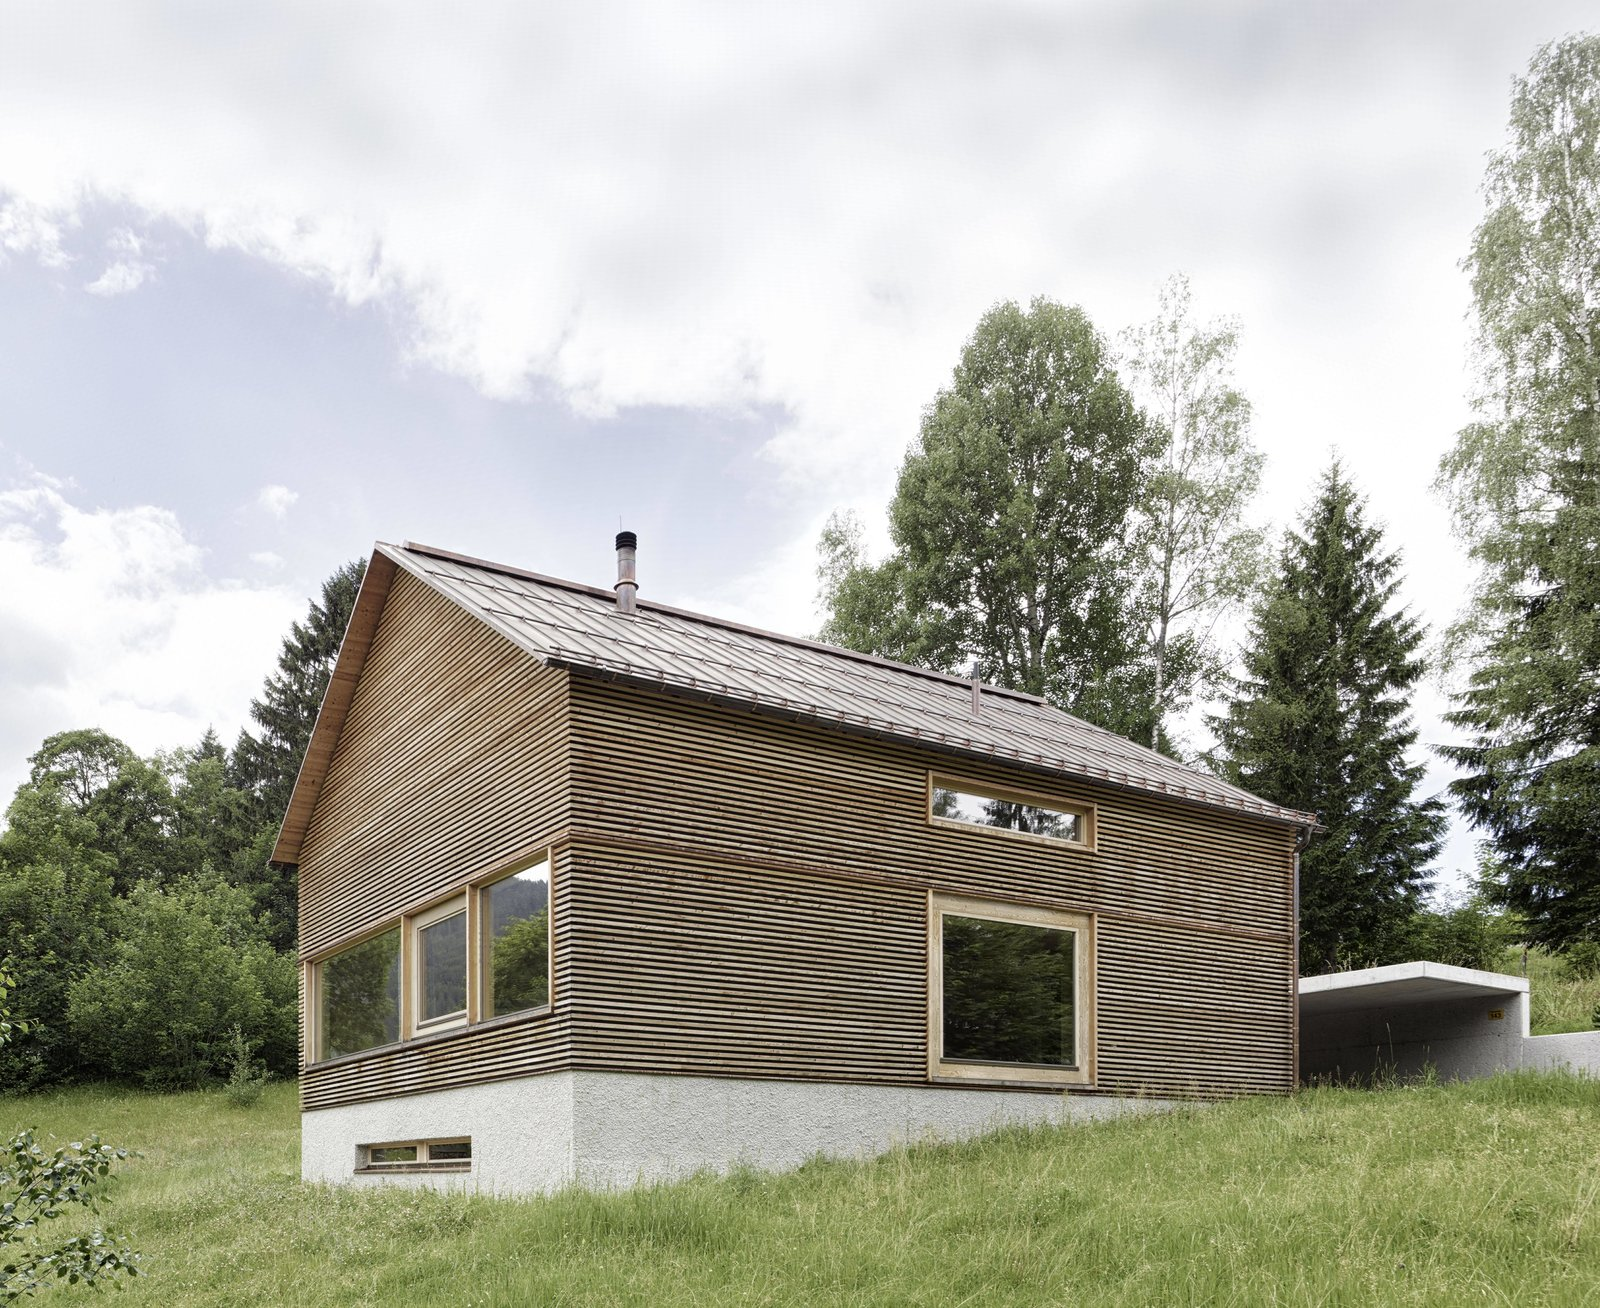 Horizontal larch cladding was used for the façade to give the house an interesting ribbed texture with deep grooves.